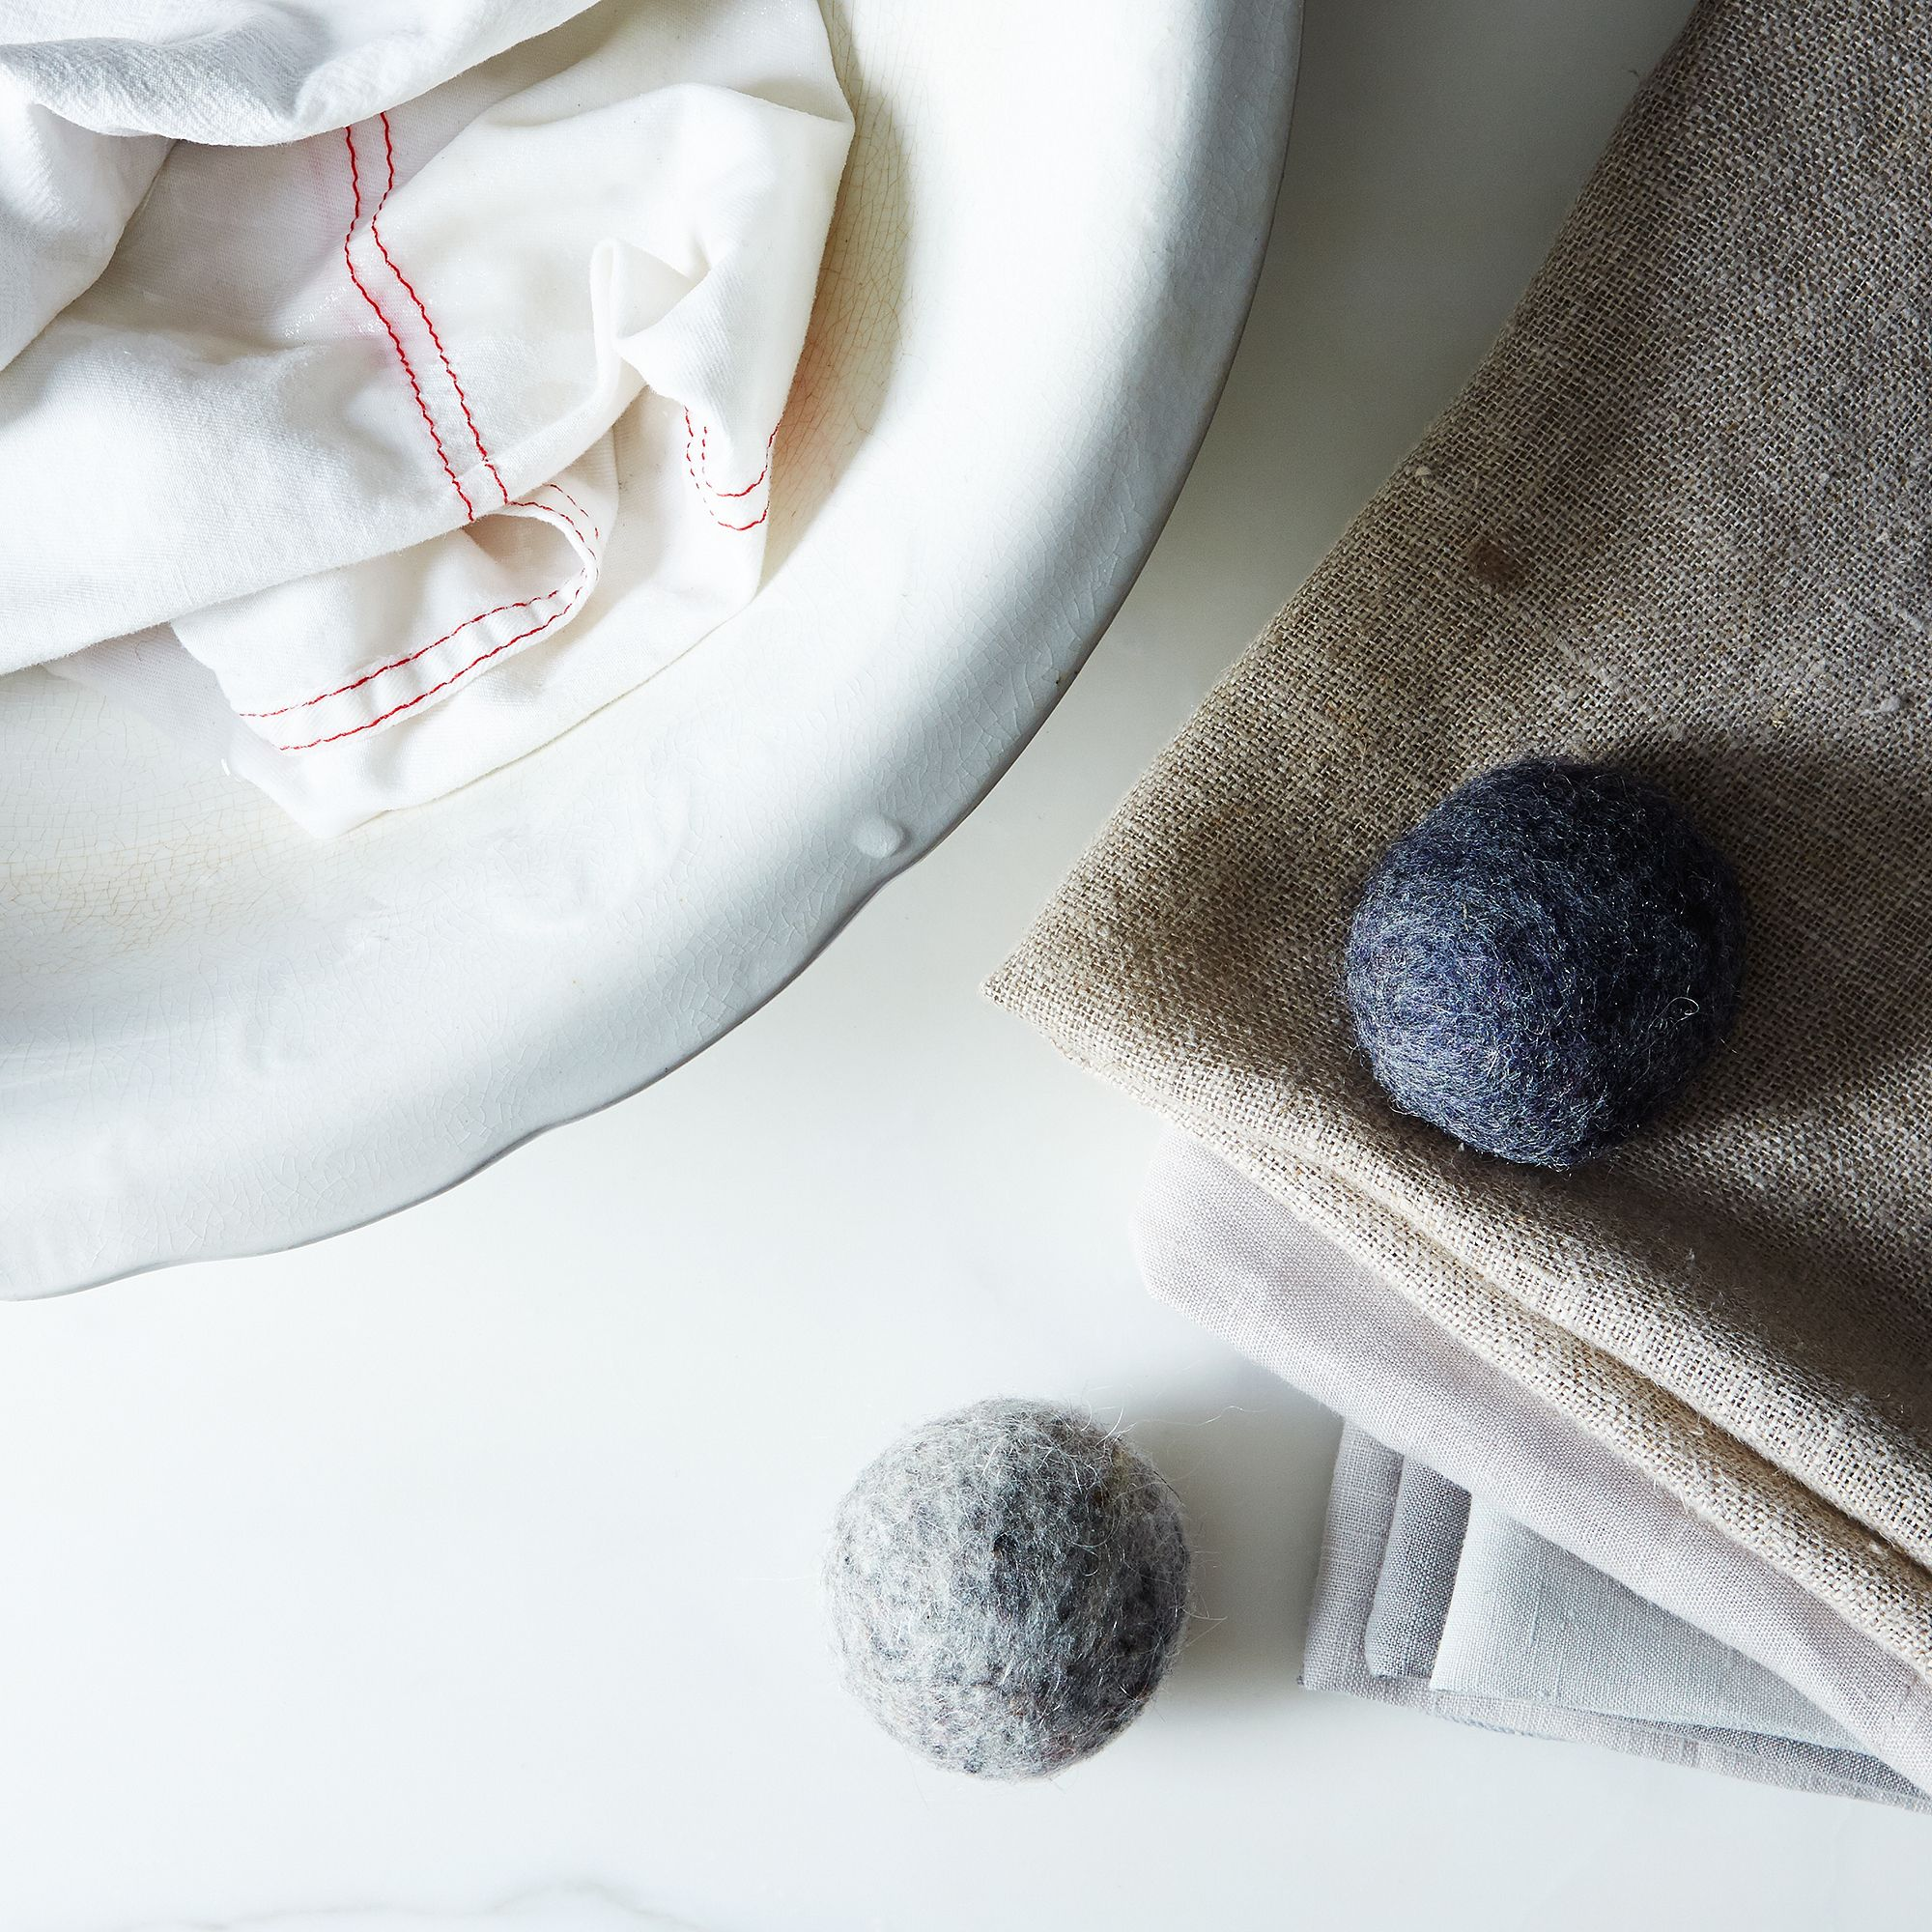 Best New Cleaning Products, Wool Dryer Balls